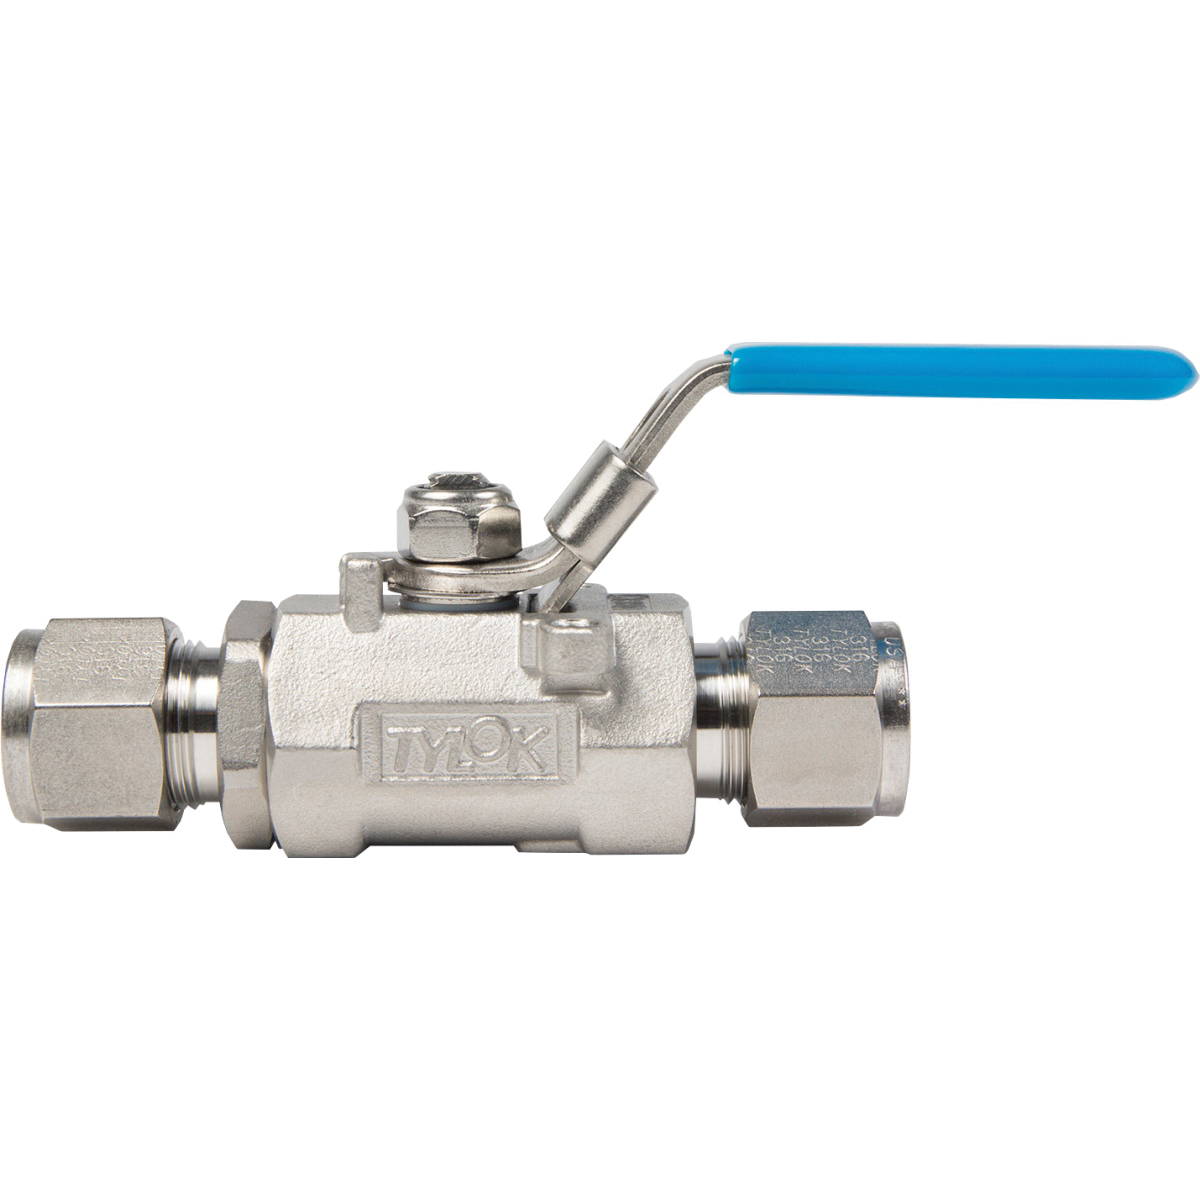 Tylok® SS-GP6-D6D6 Stainless Steel Full Port Ball Valve, 3/8 in, Compression Tube, 2000 psi, -30 to 400 deg F